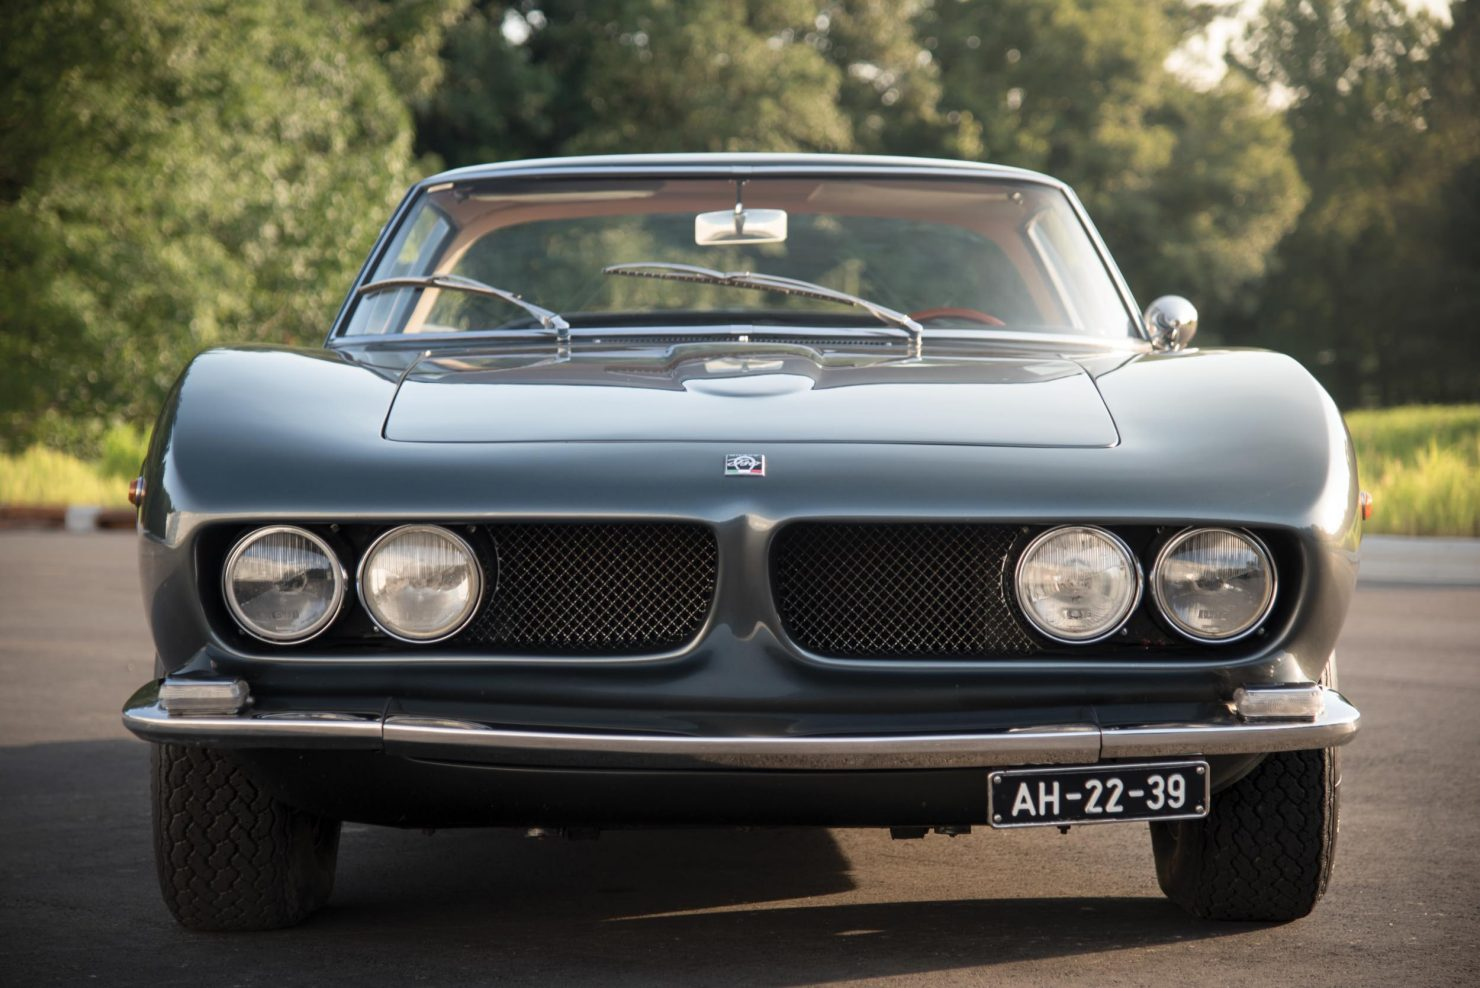 iso grifo car 10 1480x988 - 1966 Iso Grifo GL Series I